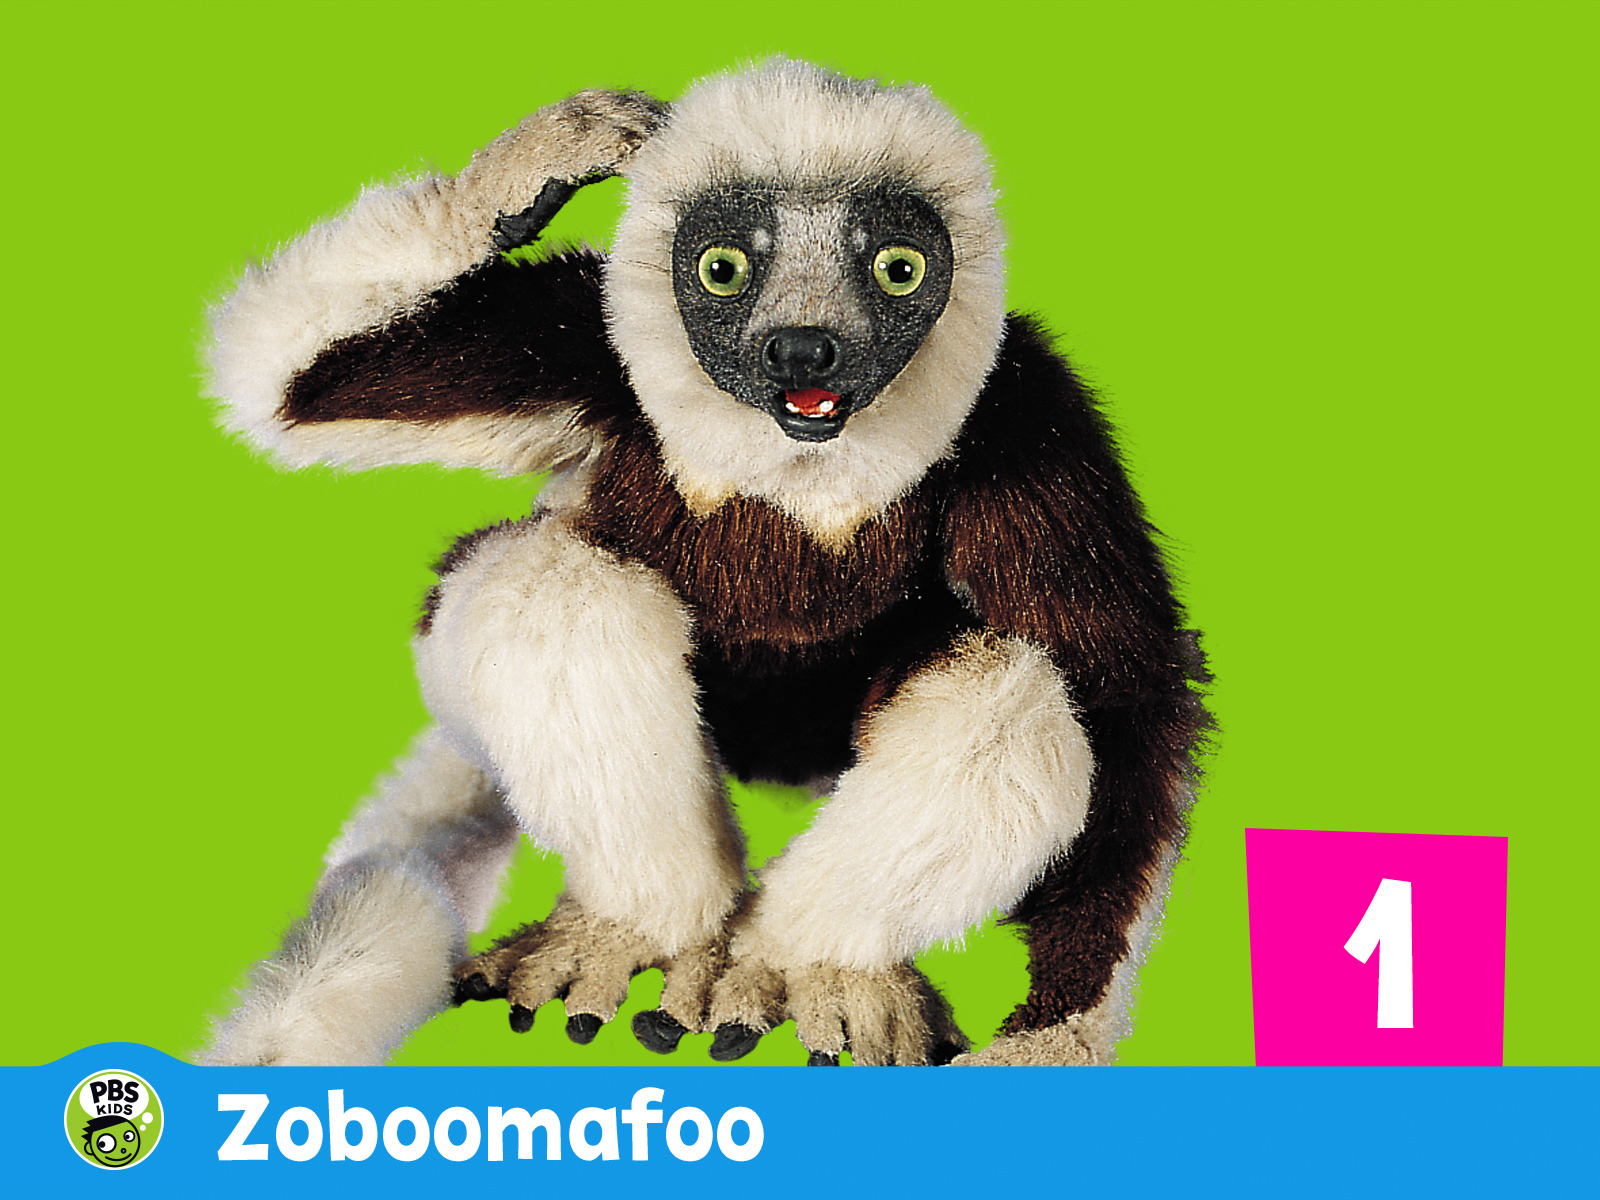 Watch Zoboomafoo Episodes On Pbs Season 1 2016 Tv Guide